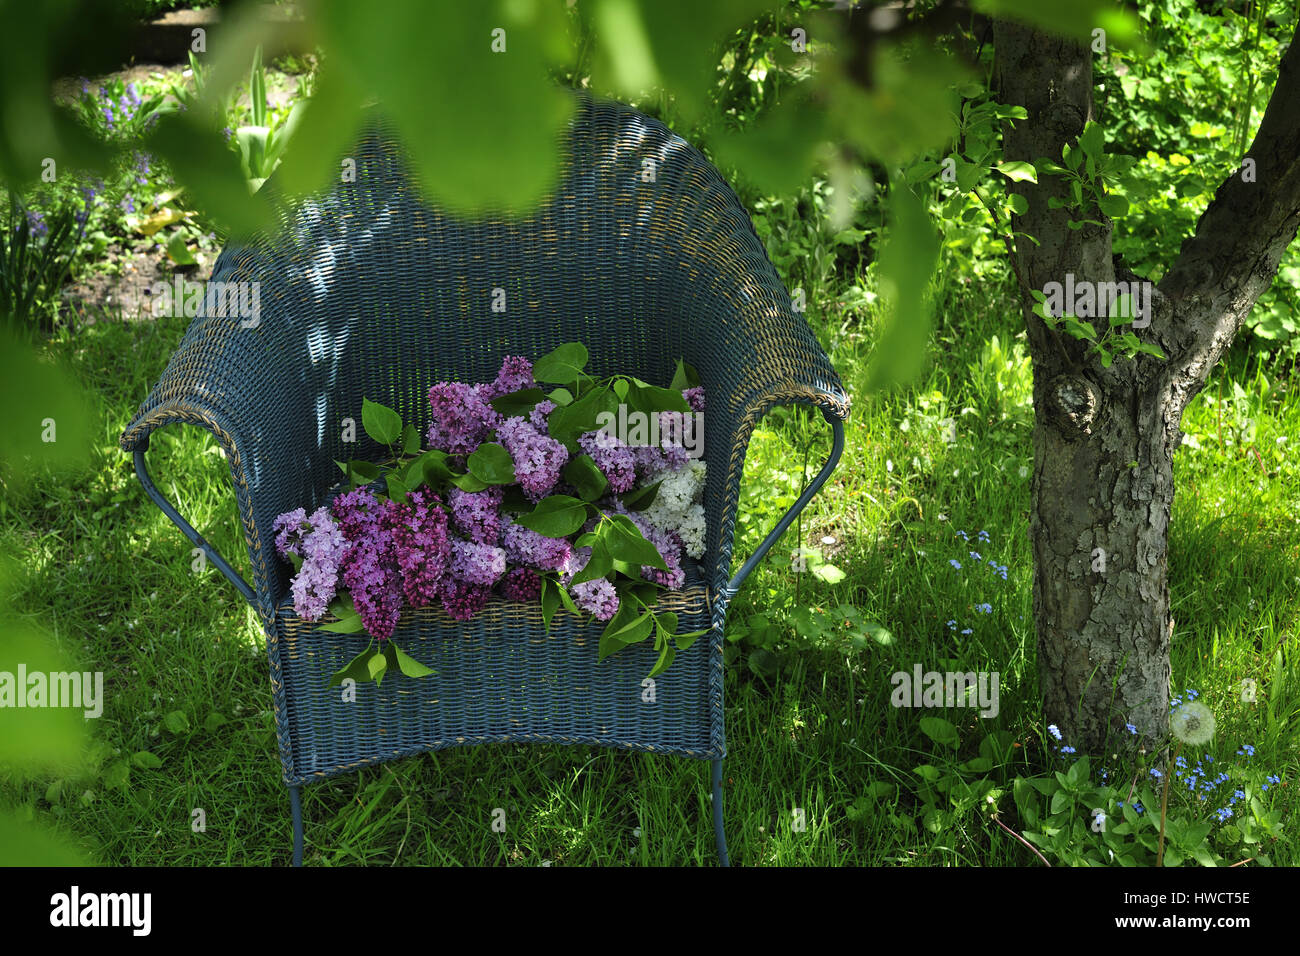 Shrubs with purple flowers at end of branch -  Branch Bucket Cut Cut Flower Harvest Lilac Mauve Outdoors